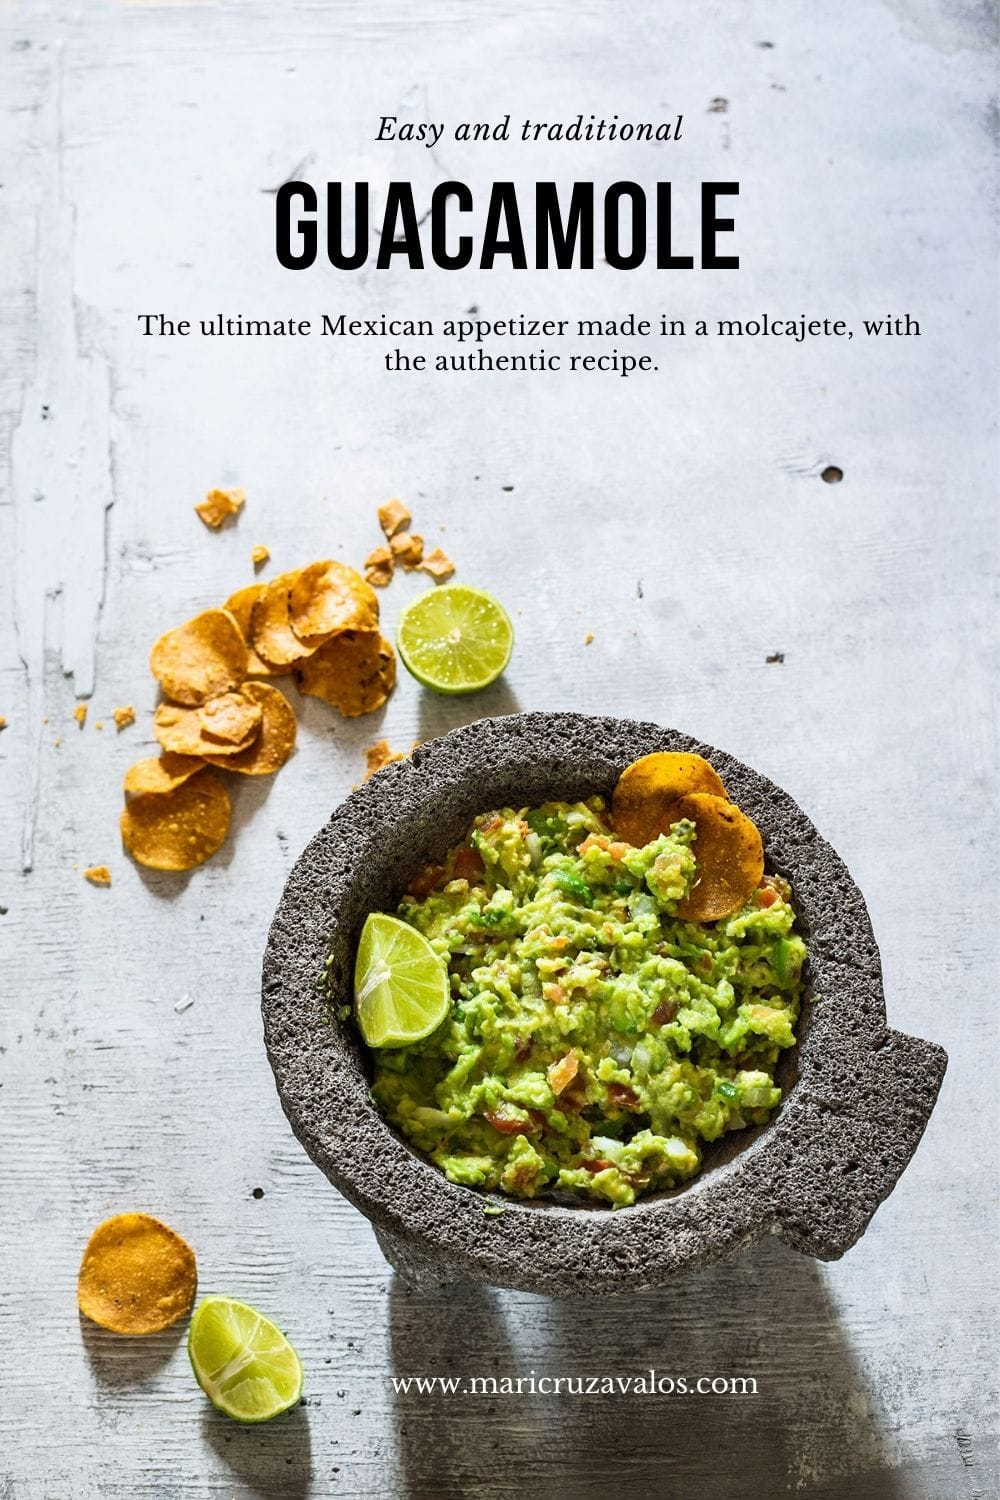 Mexican guacamole on a molcajete with text overlay.